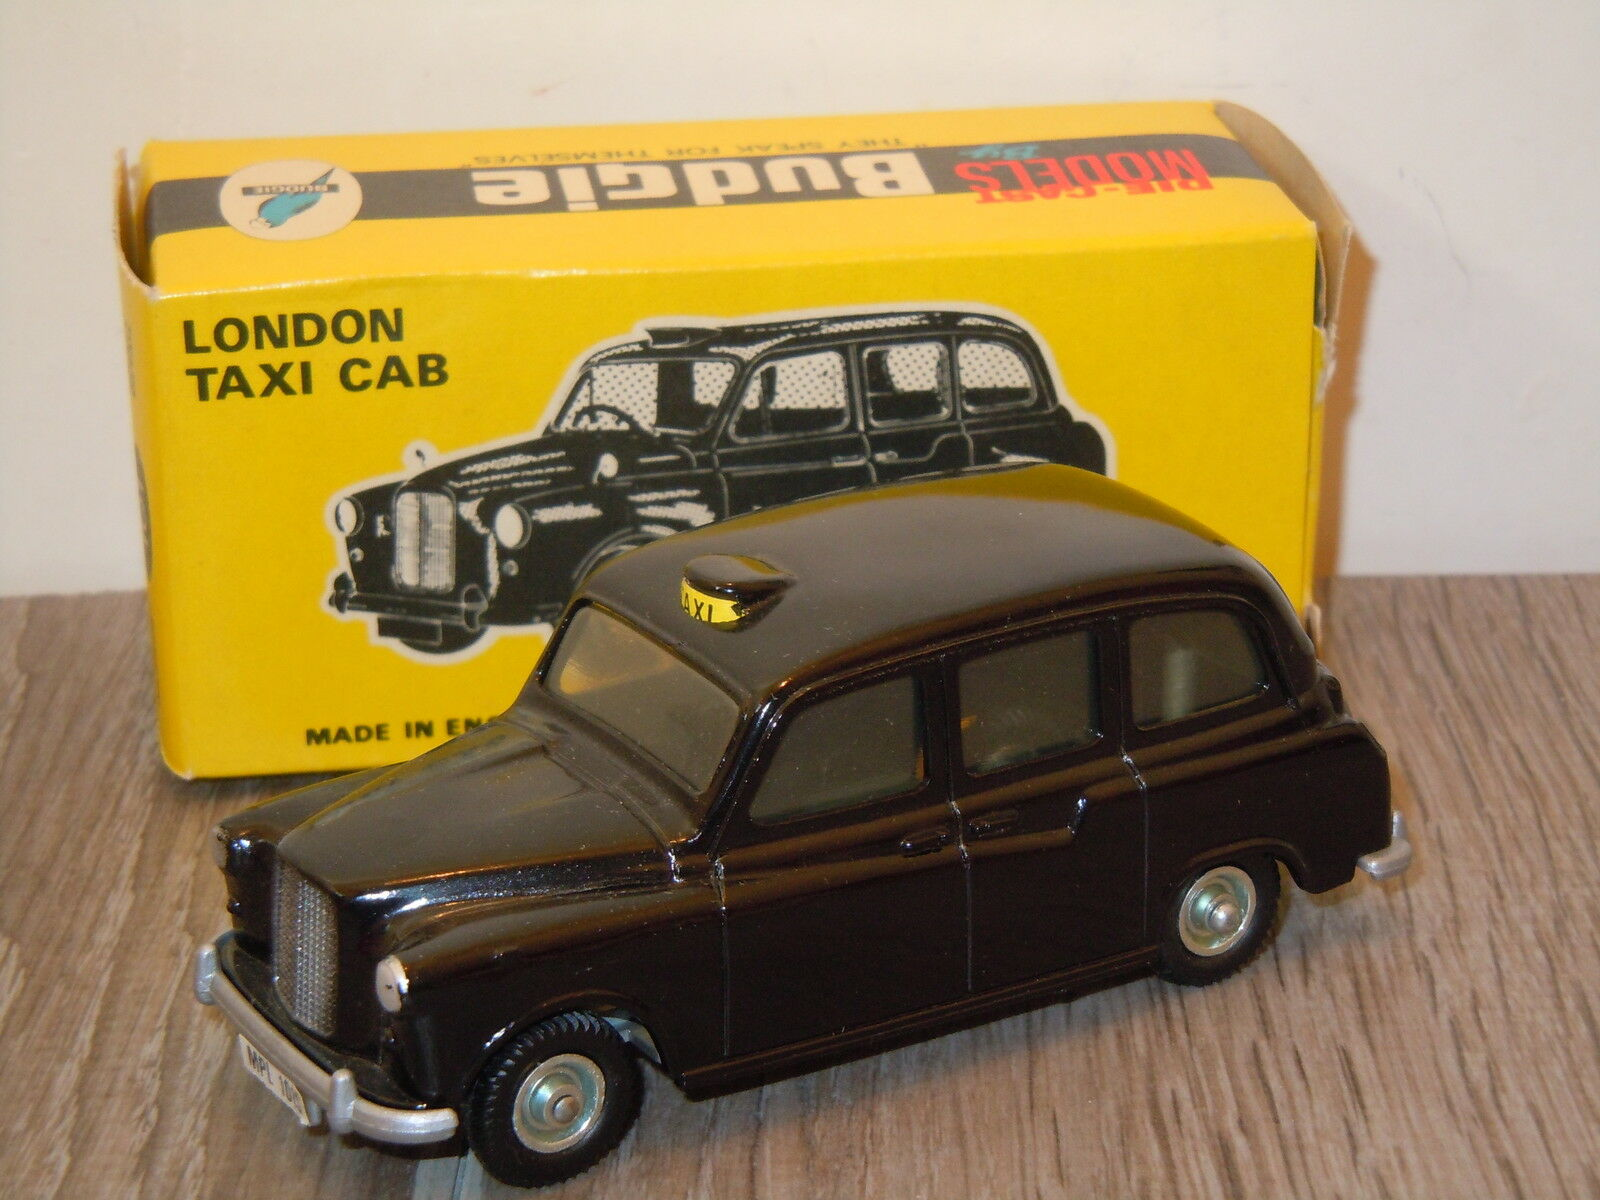 London Taxi Cab van Budgie Models 101 England in Box 6587